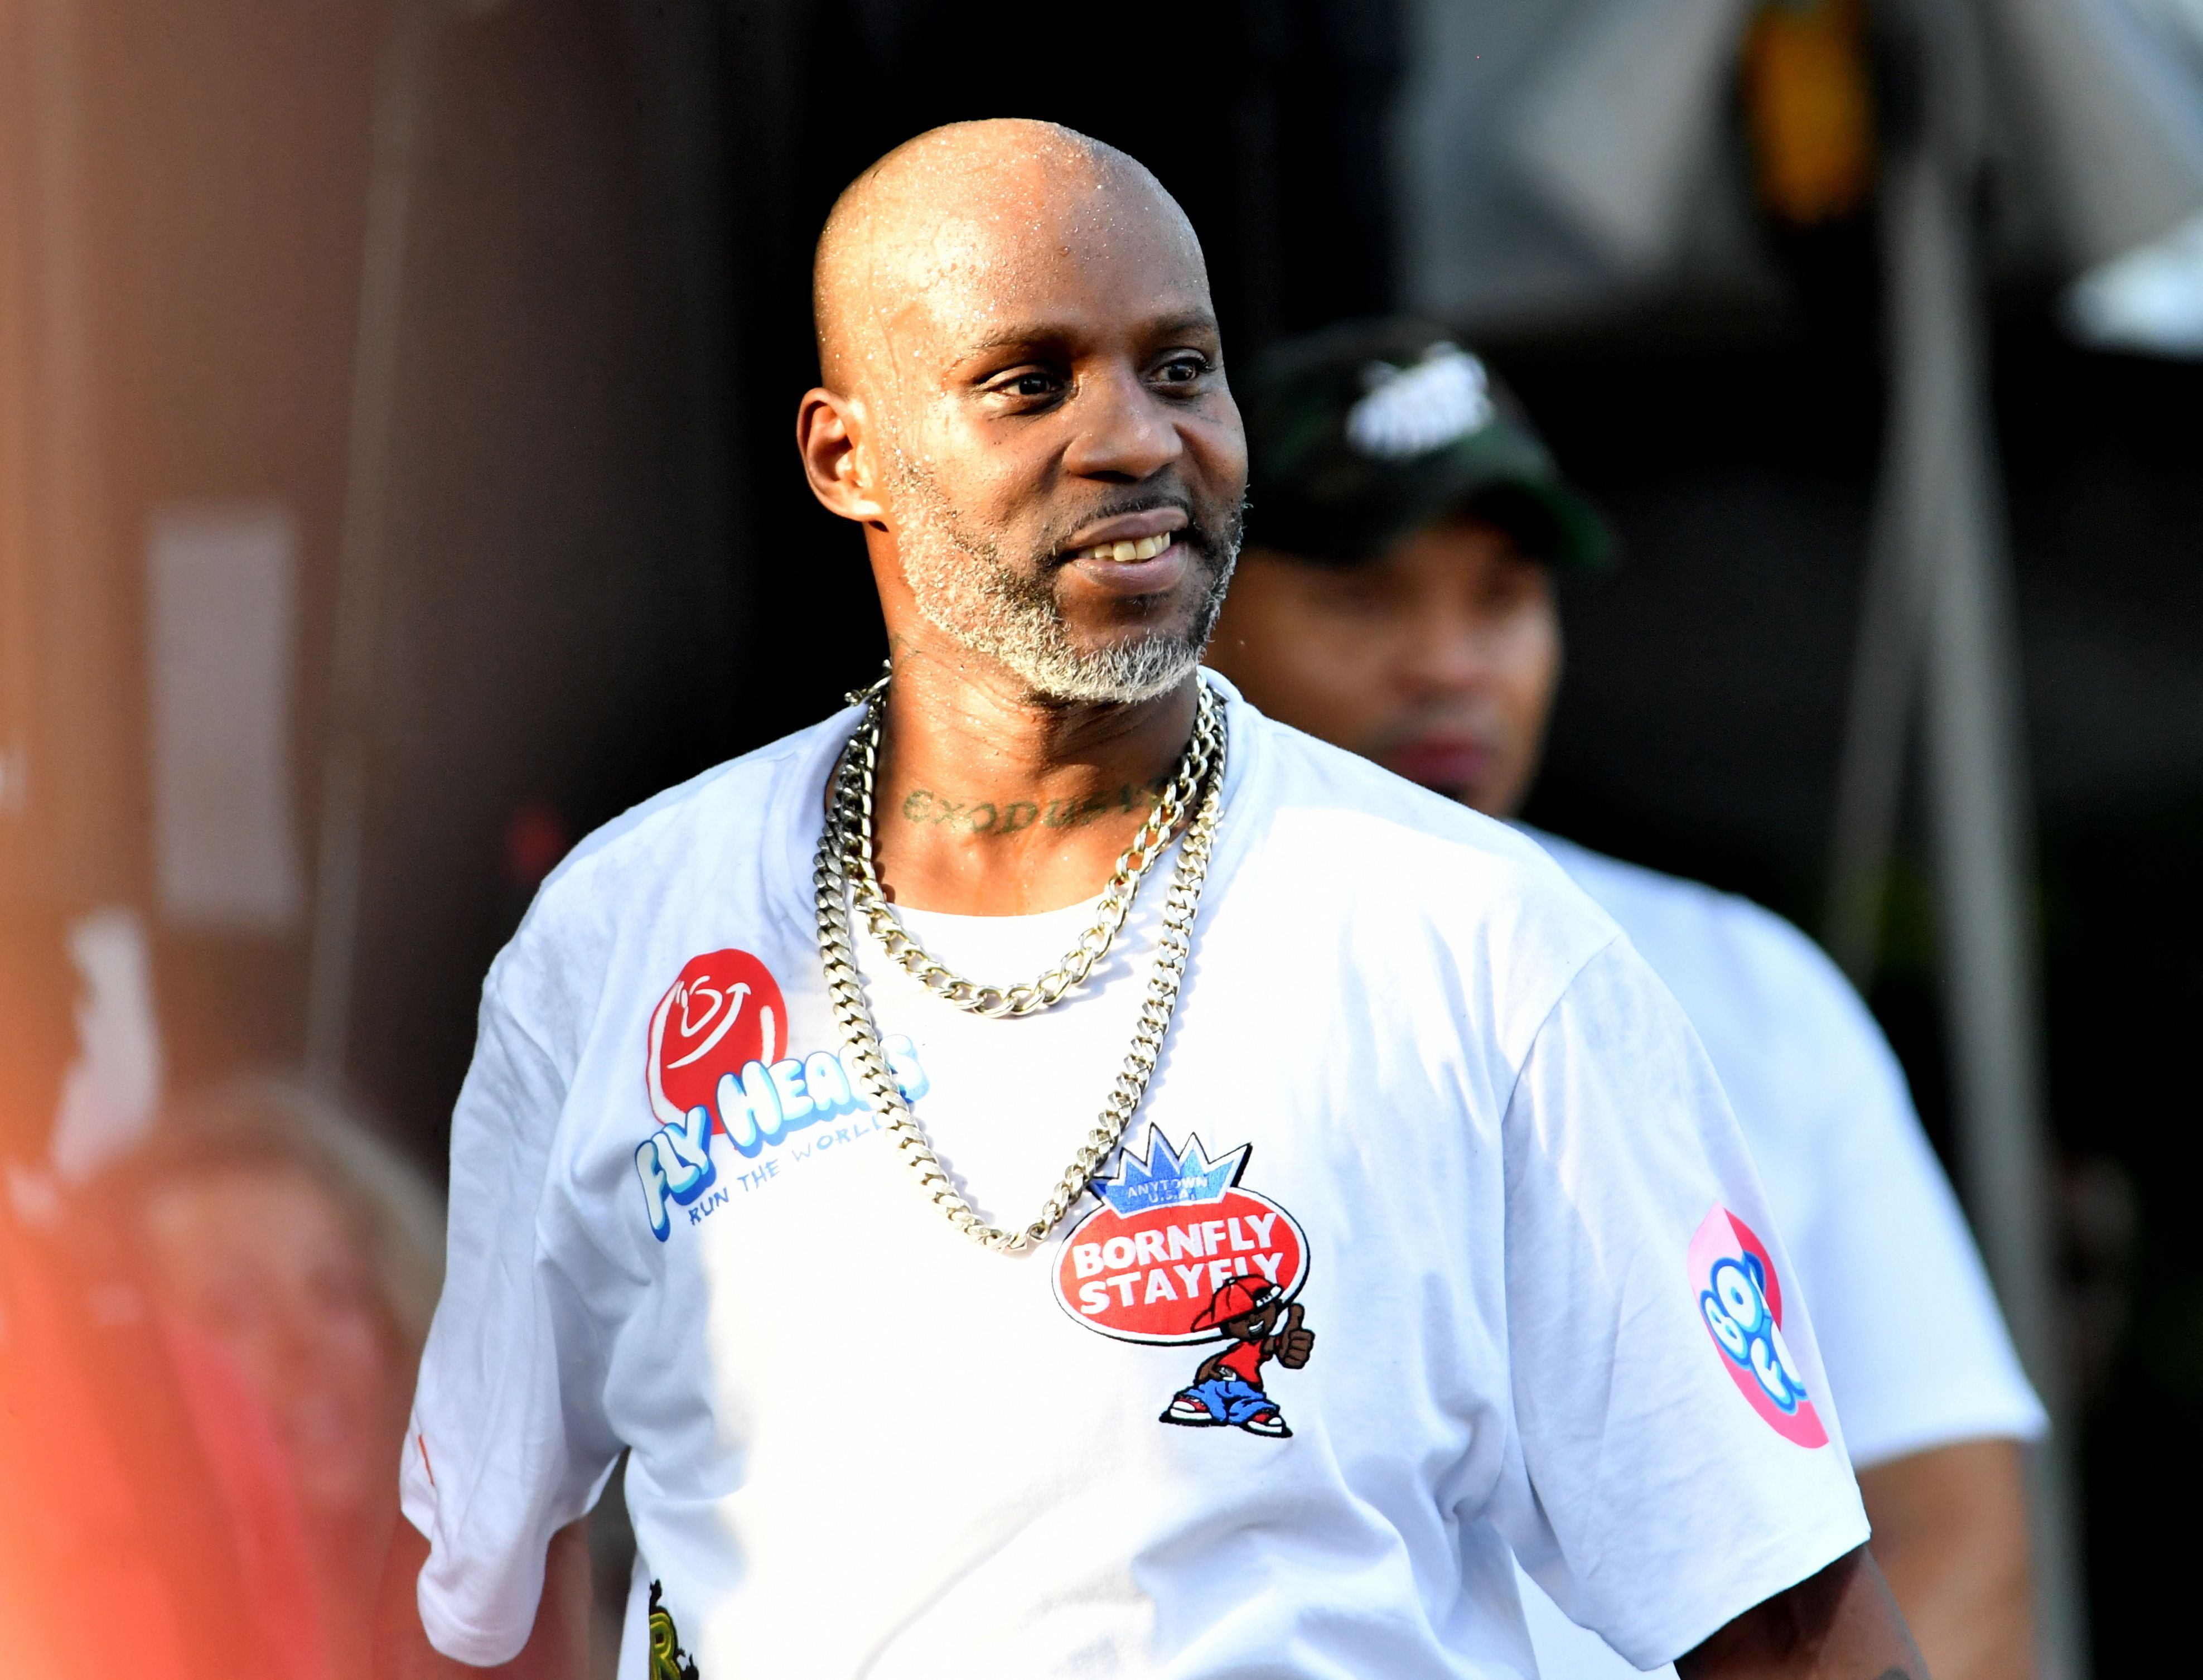 DMX performs at the Annual ONE Musicfest on September 8, 2019 in Atlanta. | Photo: Getty Images